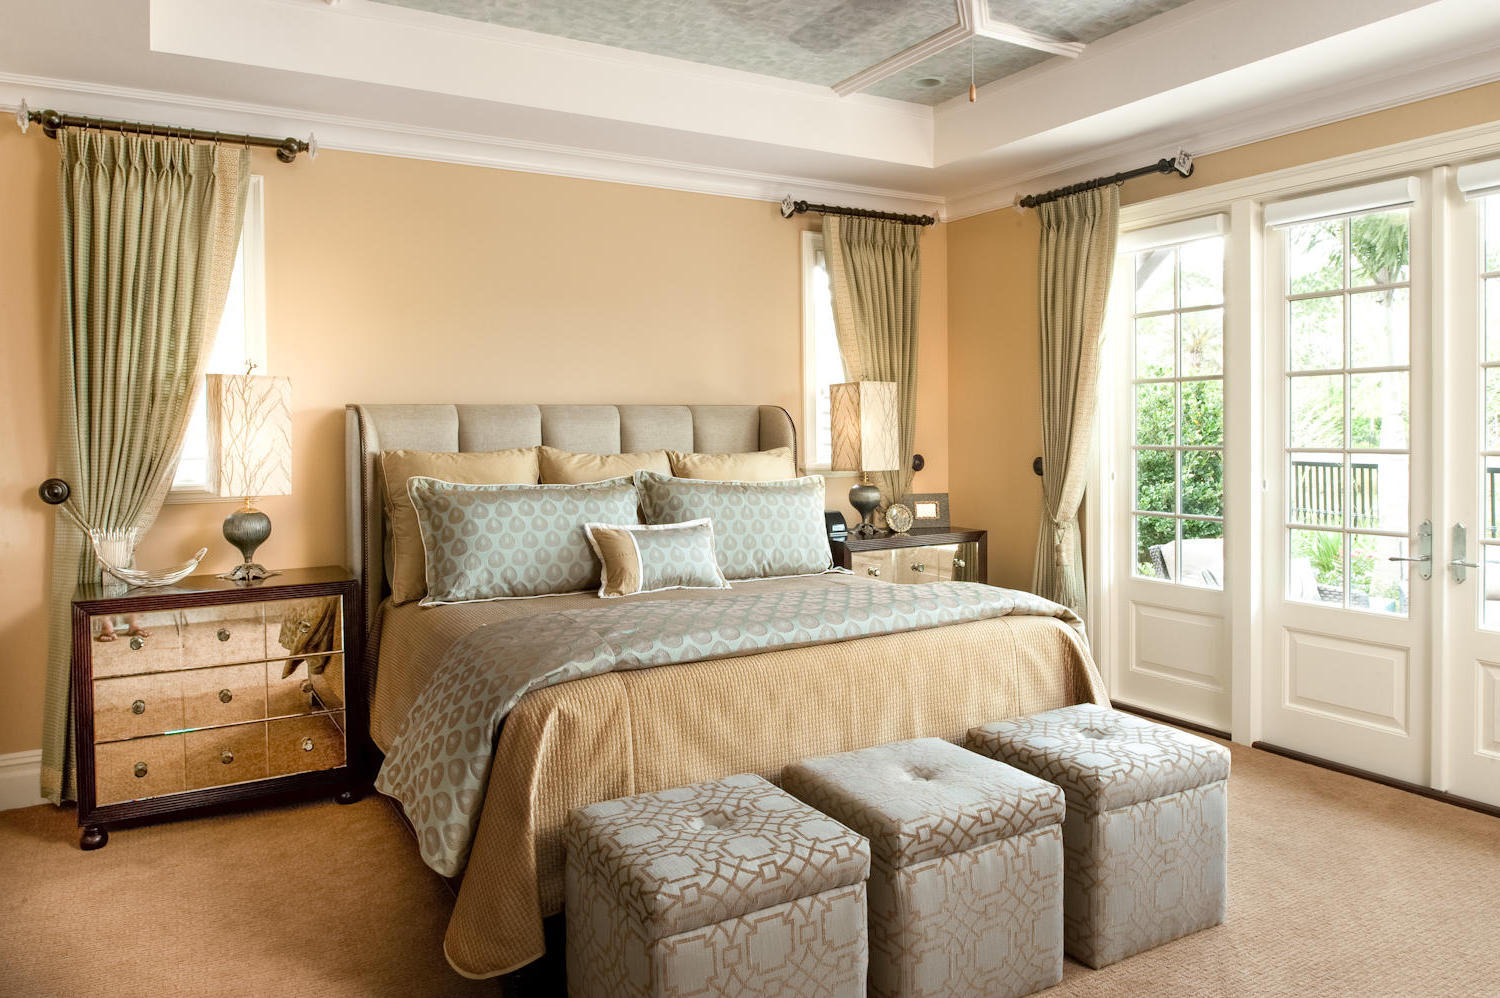 Traditional Bedroom Theme For Warm And Friendly House